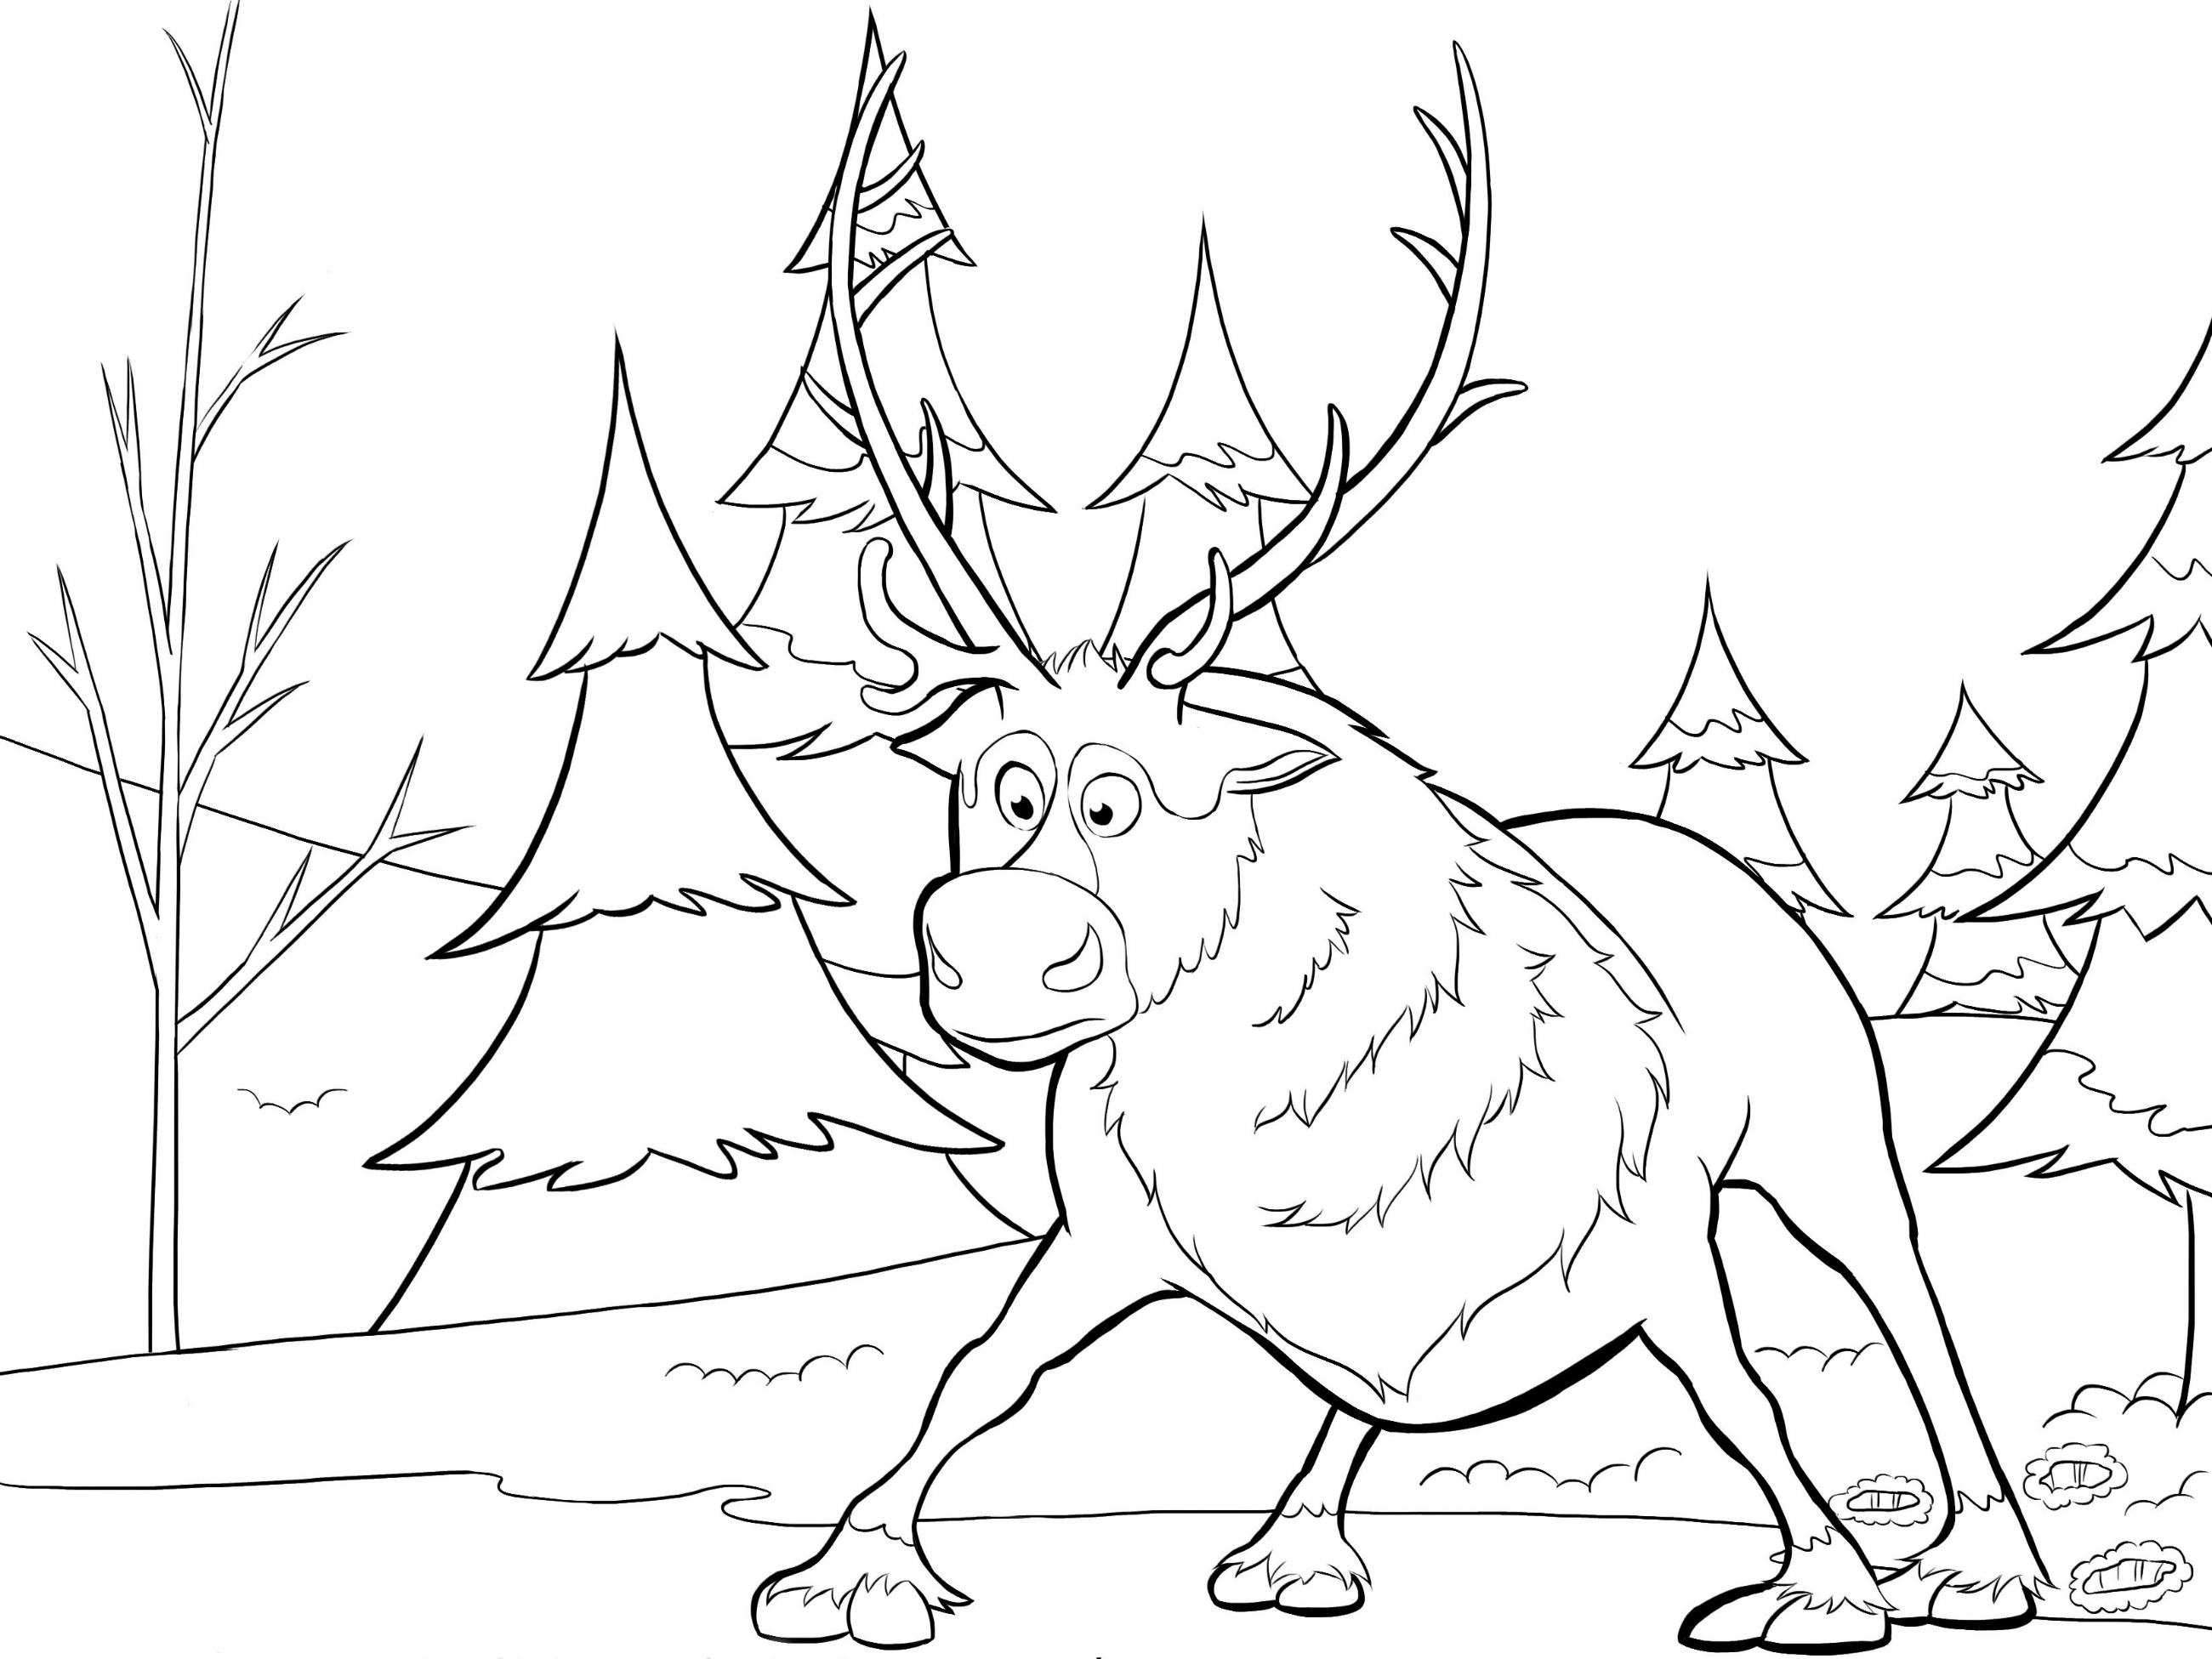 photograph about Frozen Coloring Pages Printable identified as No cost Printable Frozen Coloring Web pages for Children - Easiest